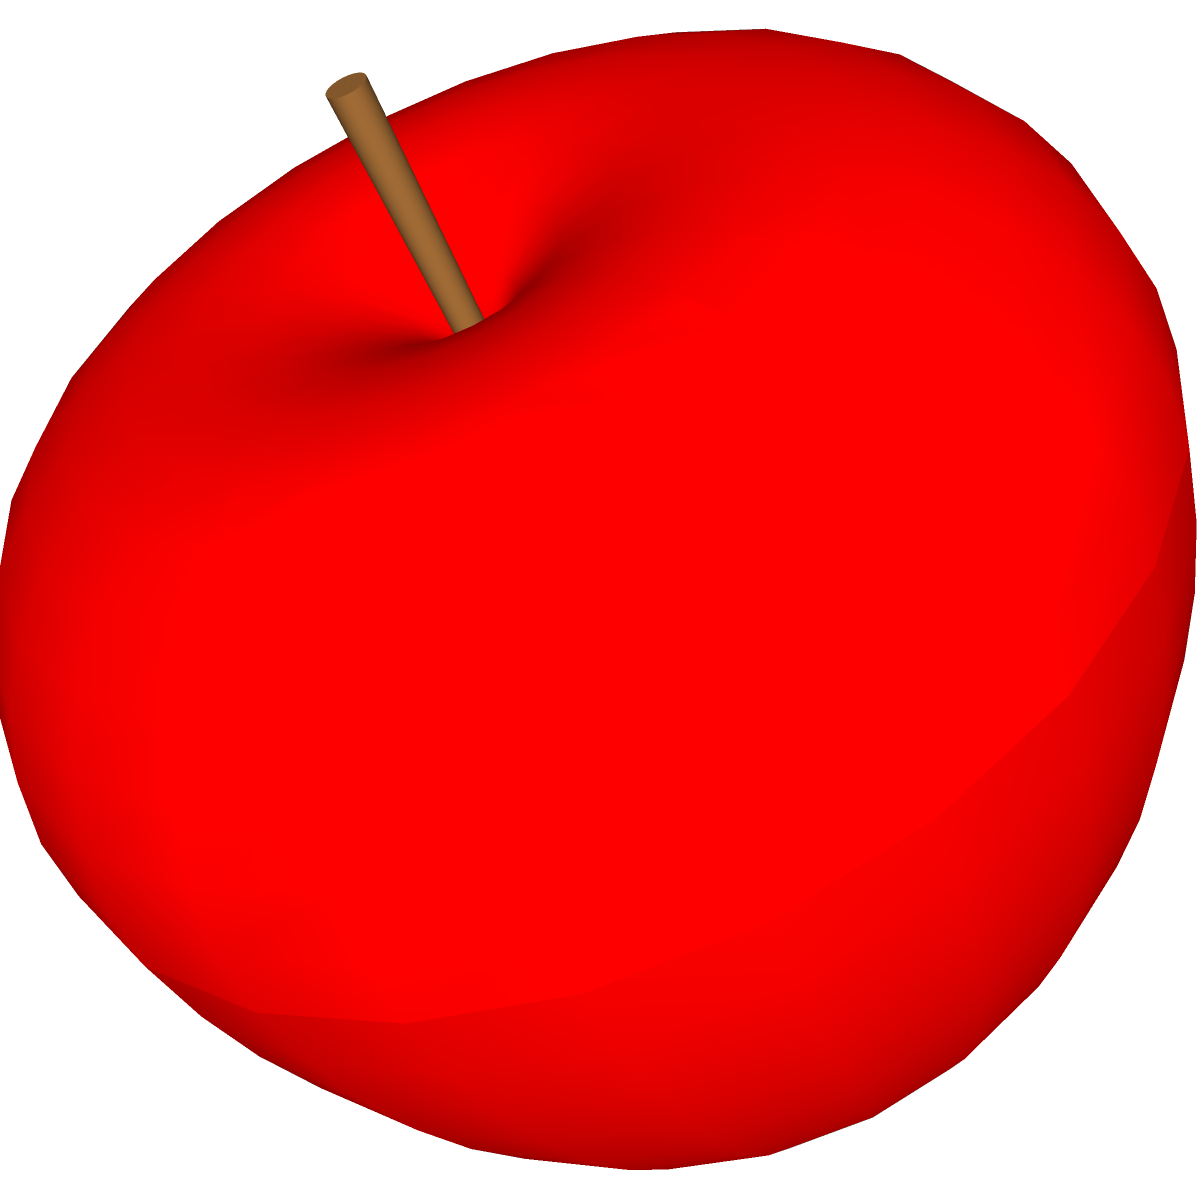 red apple clipart - photo #24